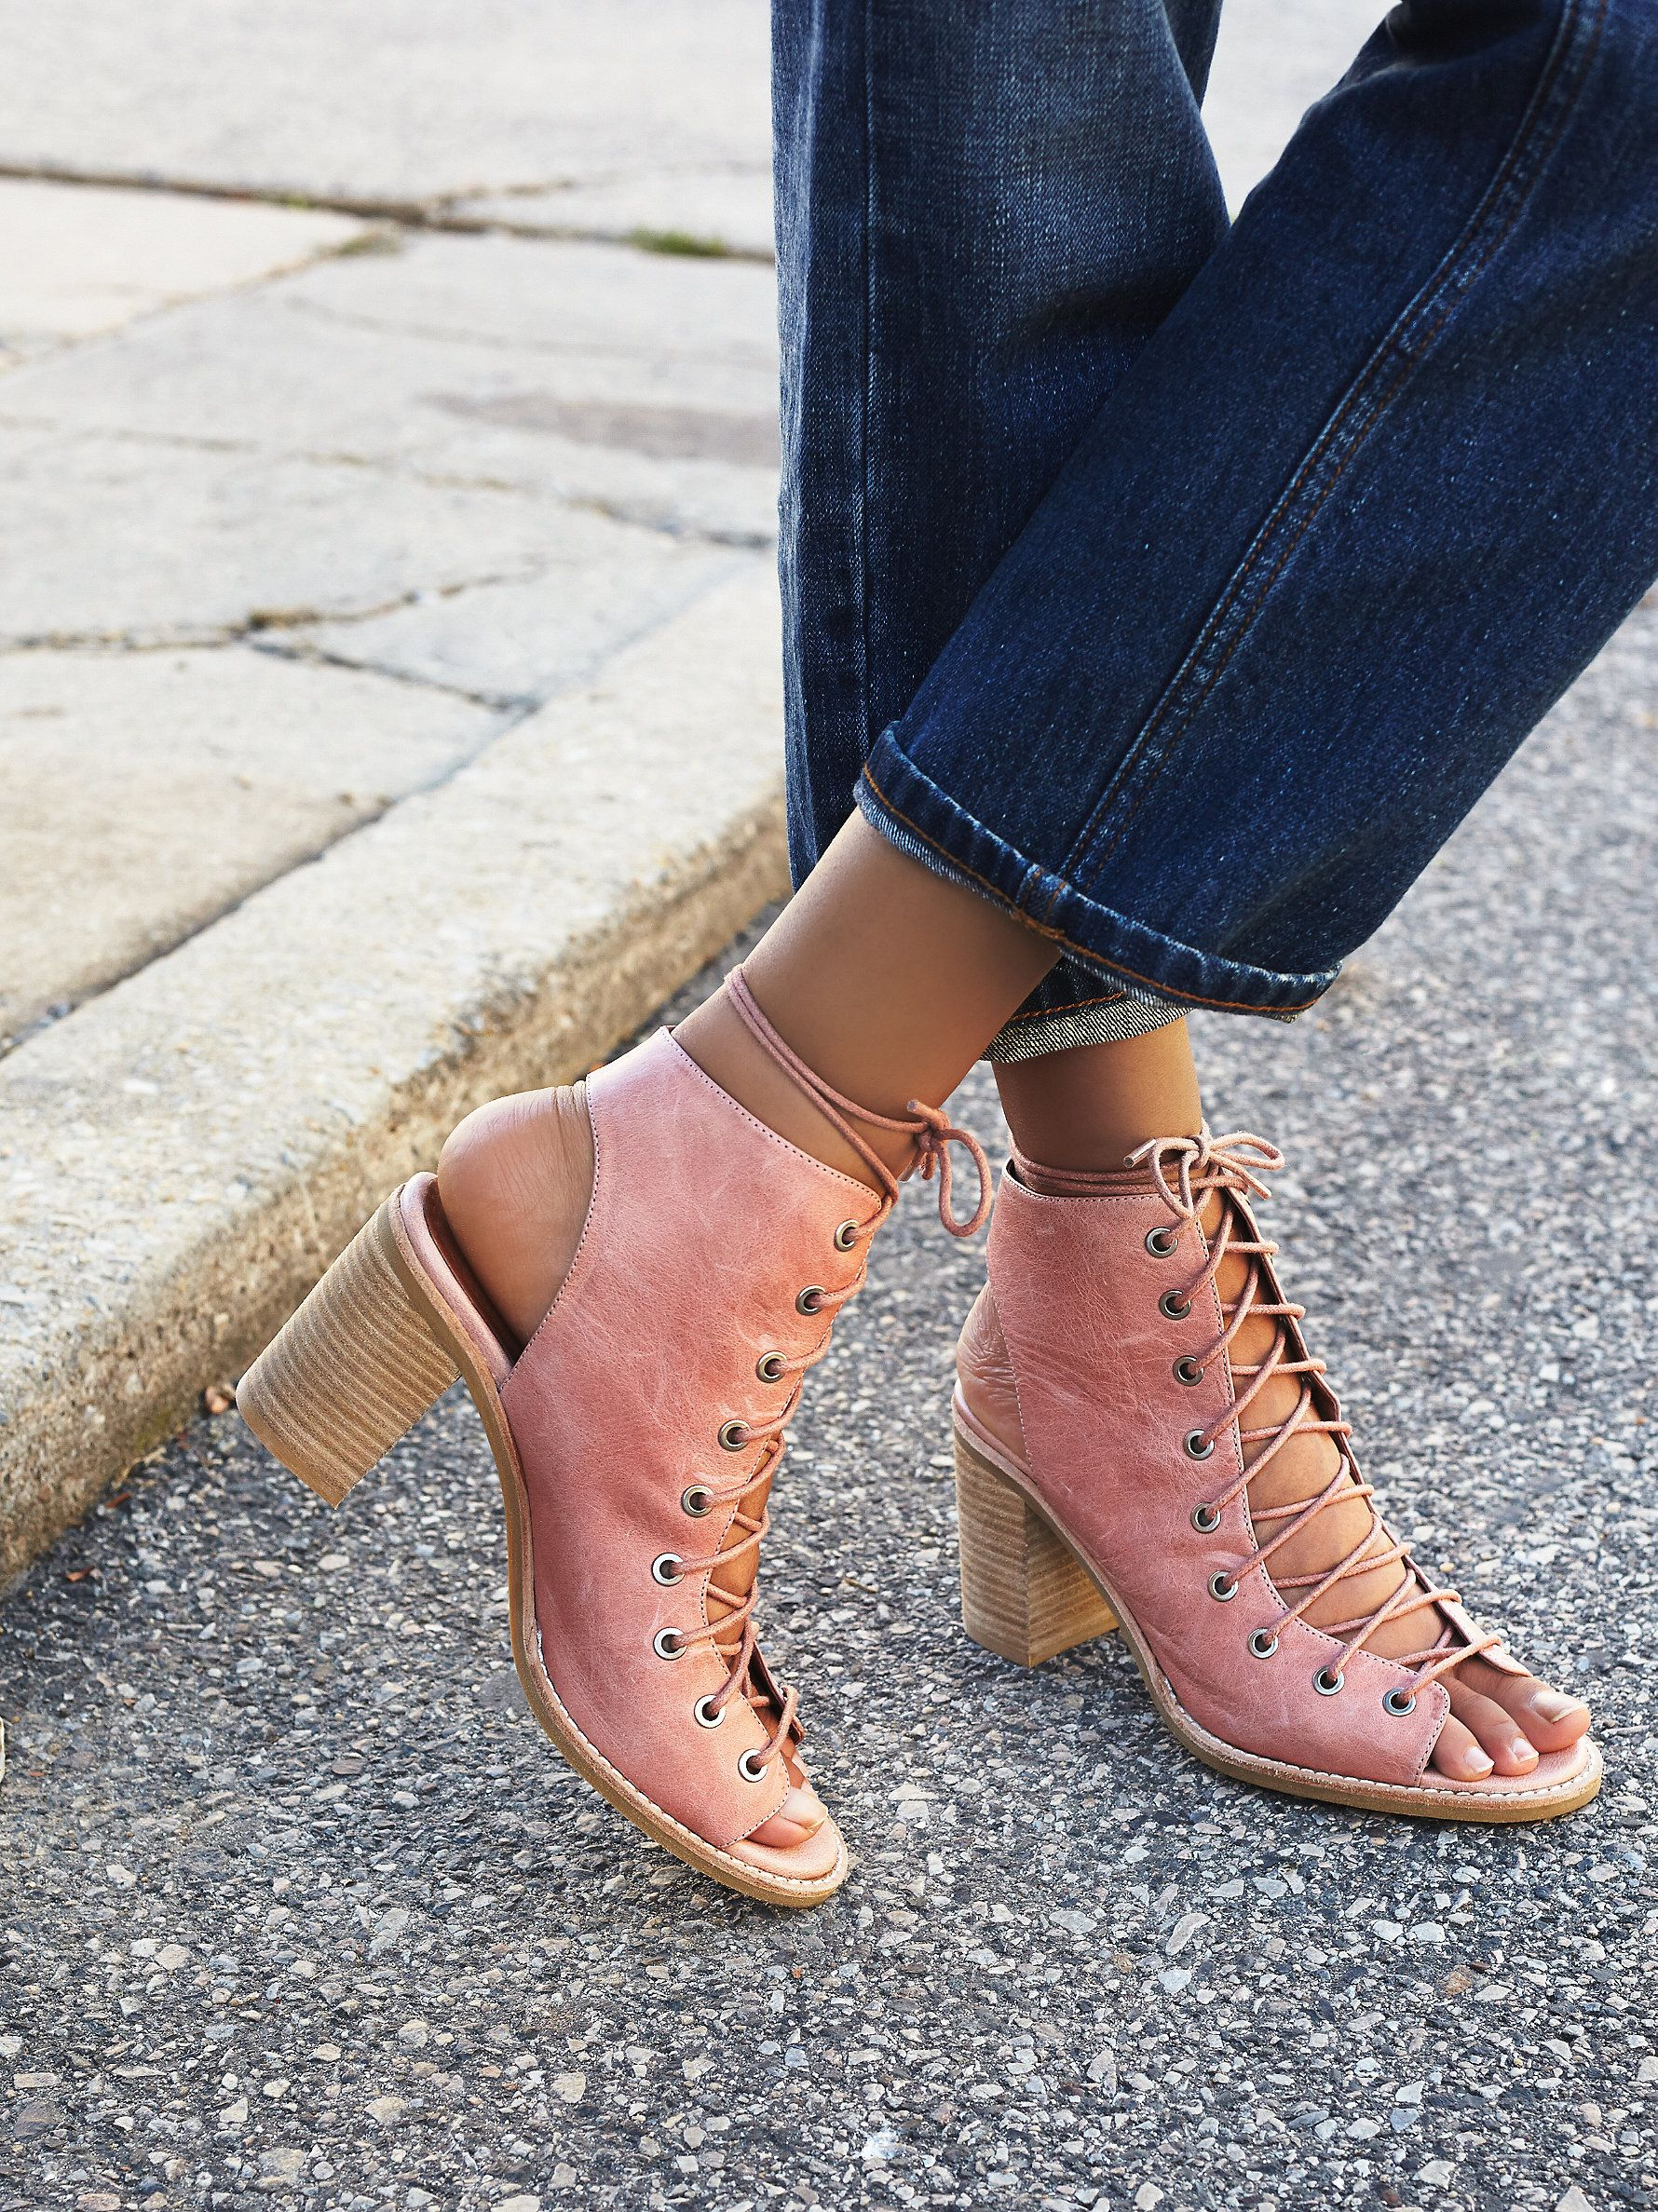 Minimal Lace Up Heel | Lace up heels, Heels, Pumps heels